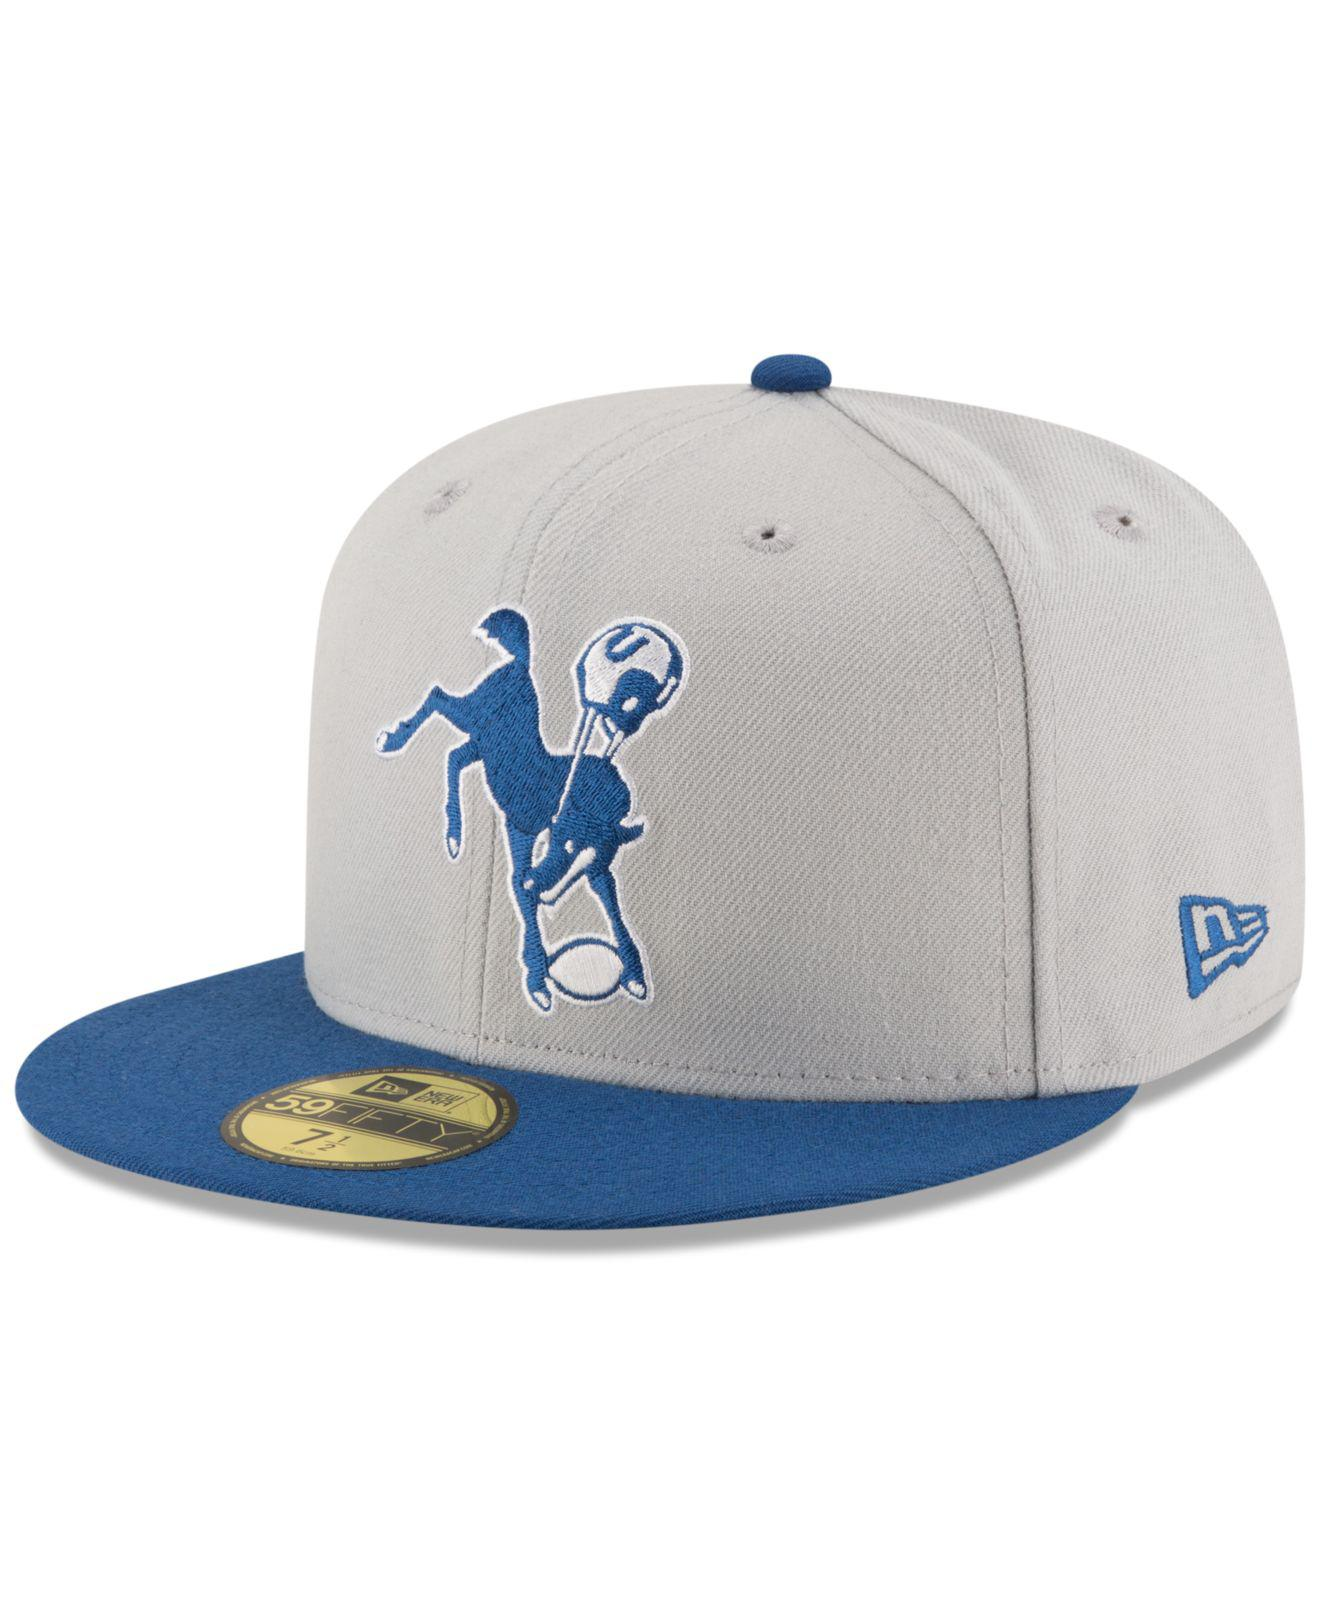 Lyst - KTZ Indianapolis Colts Team Basic 59fifty Cap for Men be589f96d